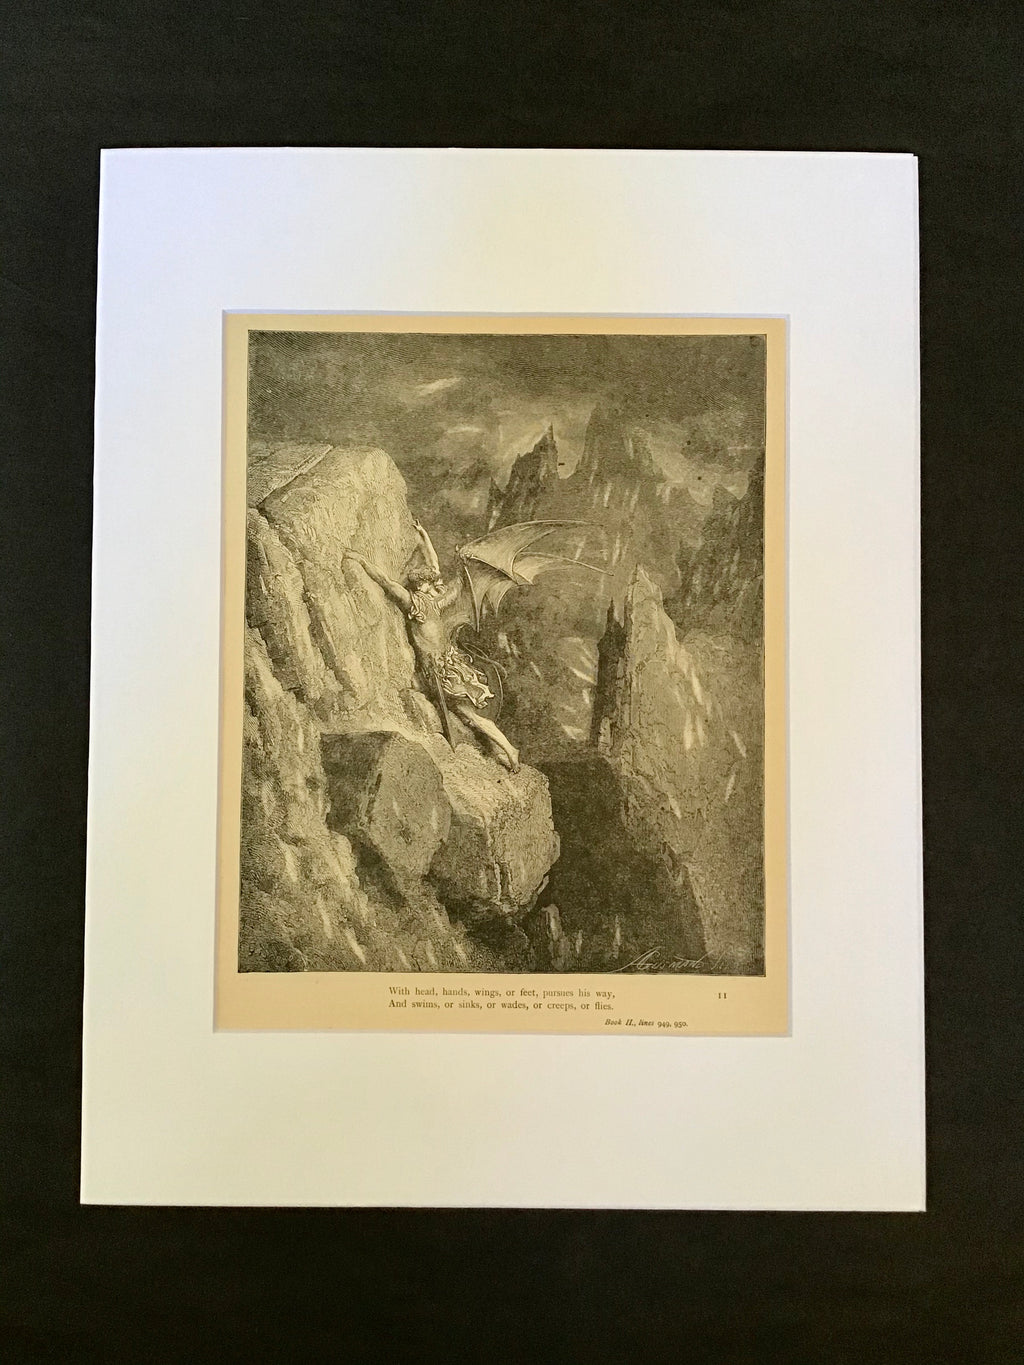 Gustave Doré Matted Print-Book II 949, 950